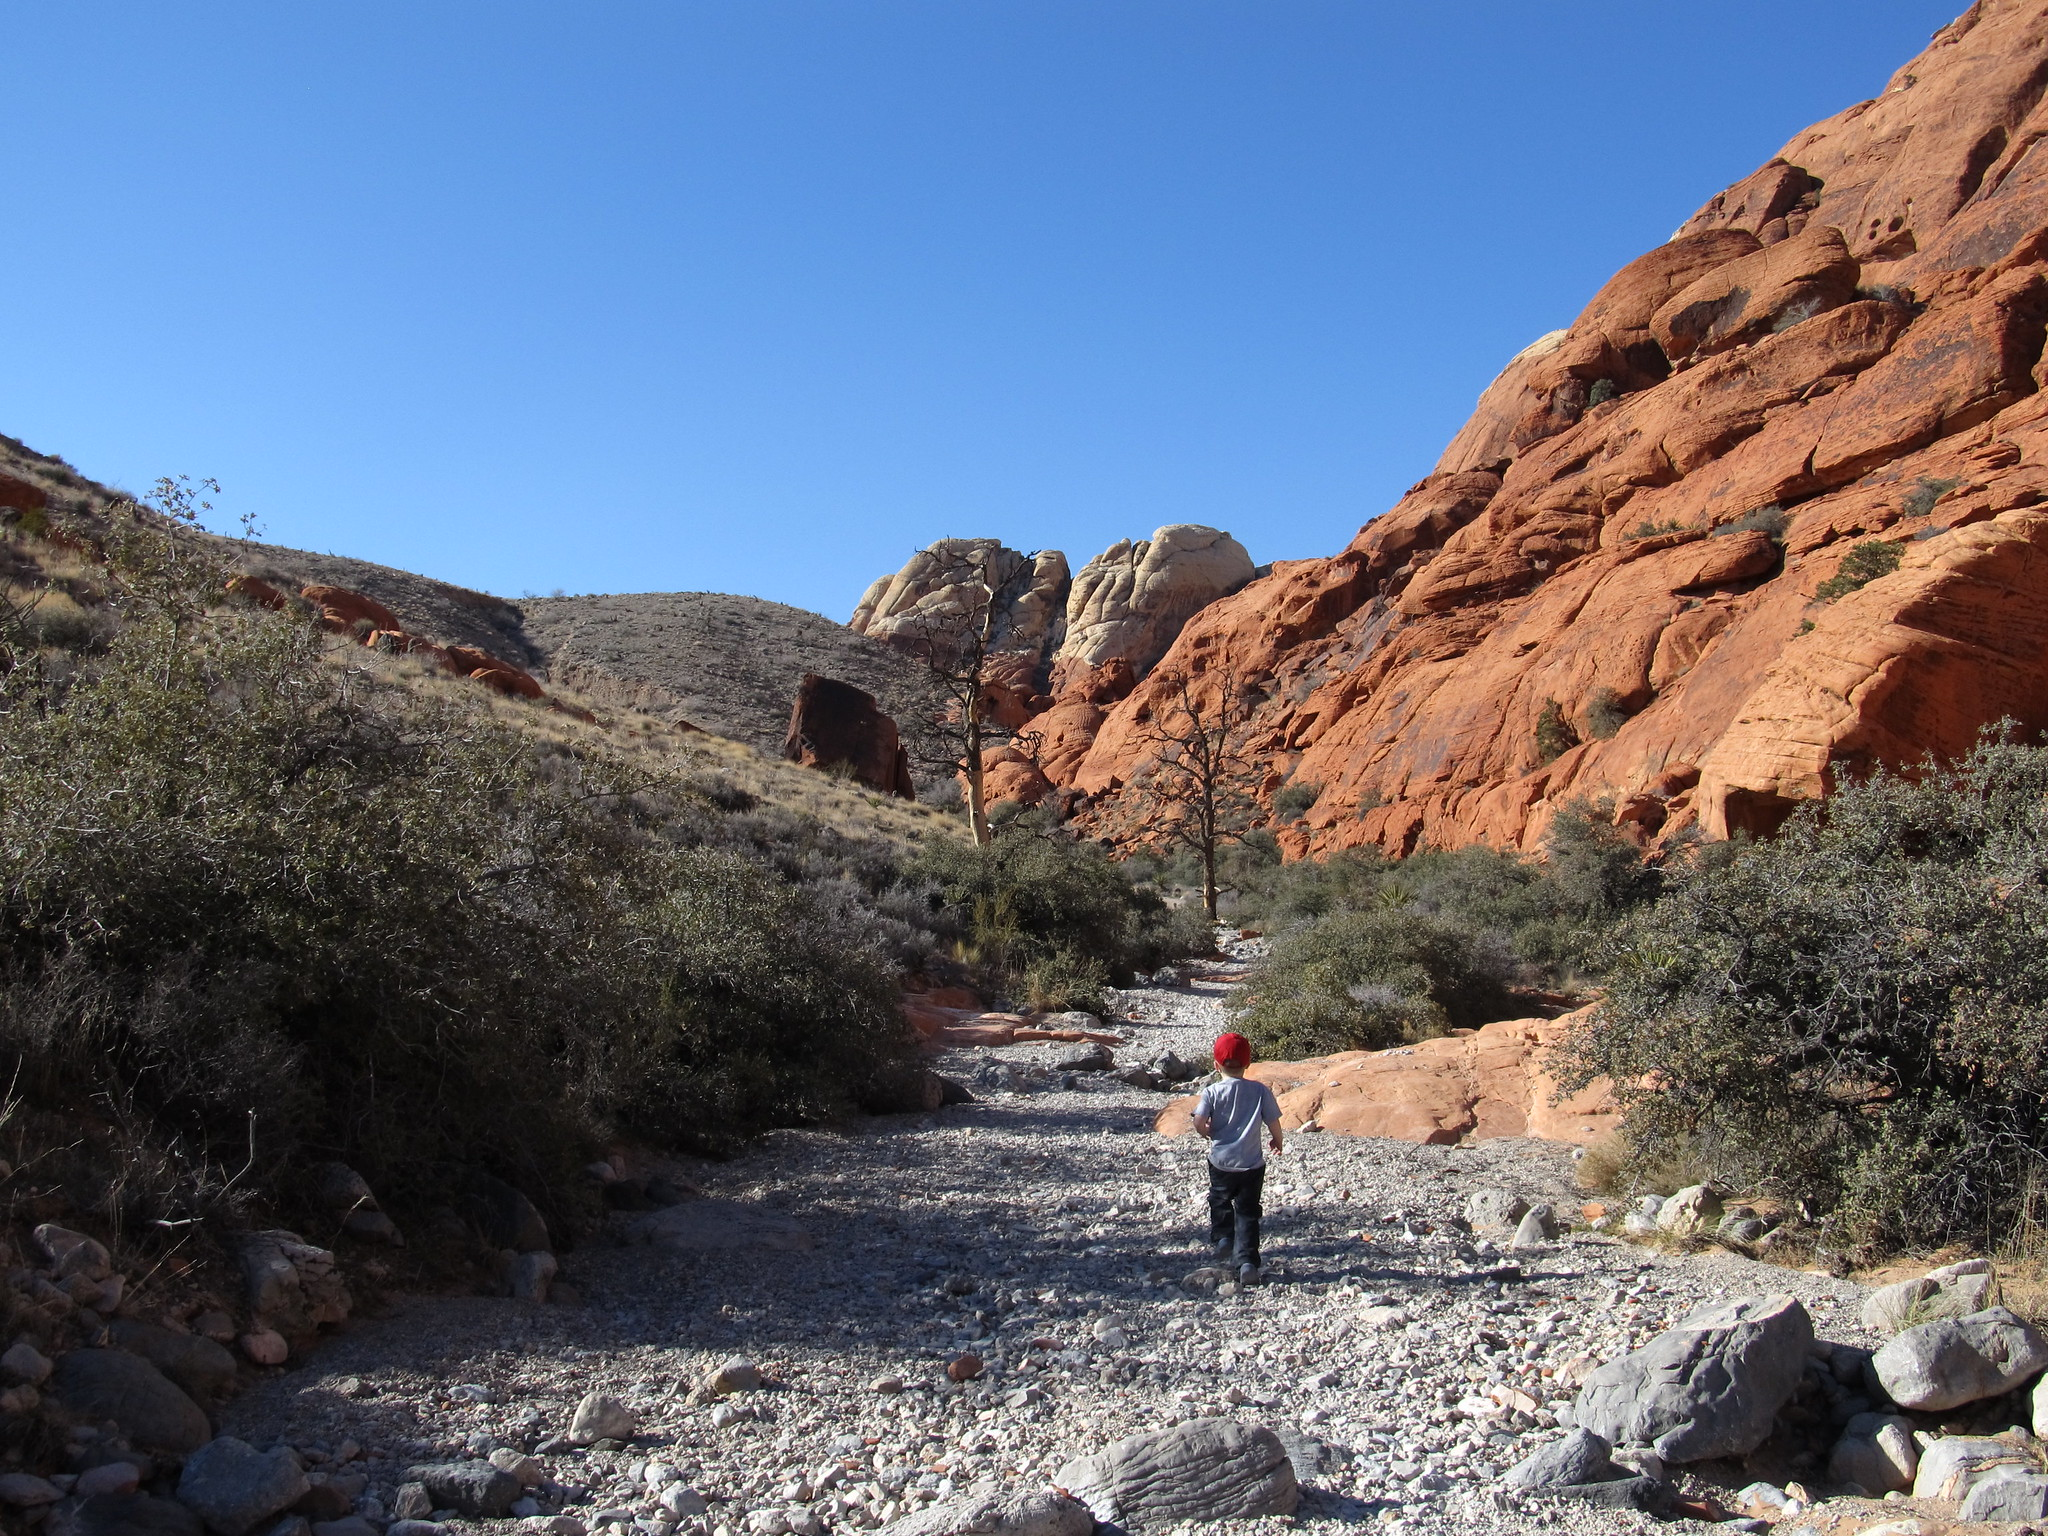 Must Visit Place In Nevada, Red Rock Canyon National Conservation Area-Calico Hills